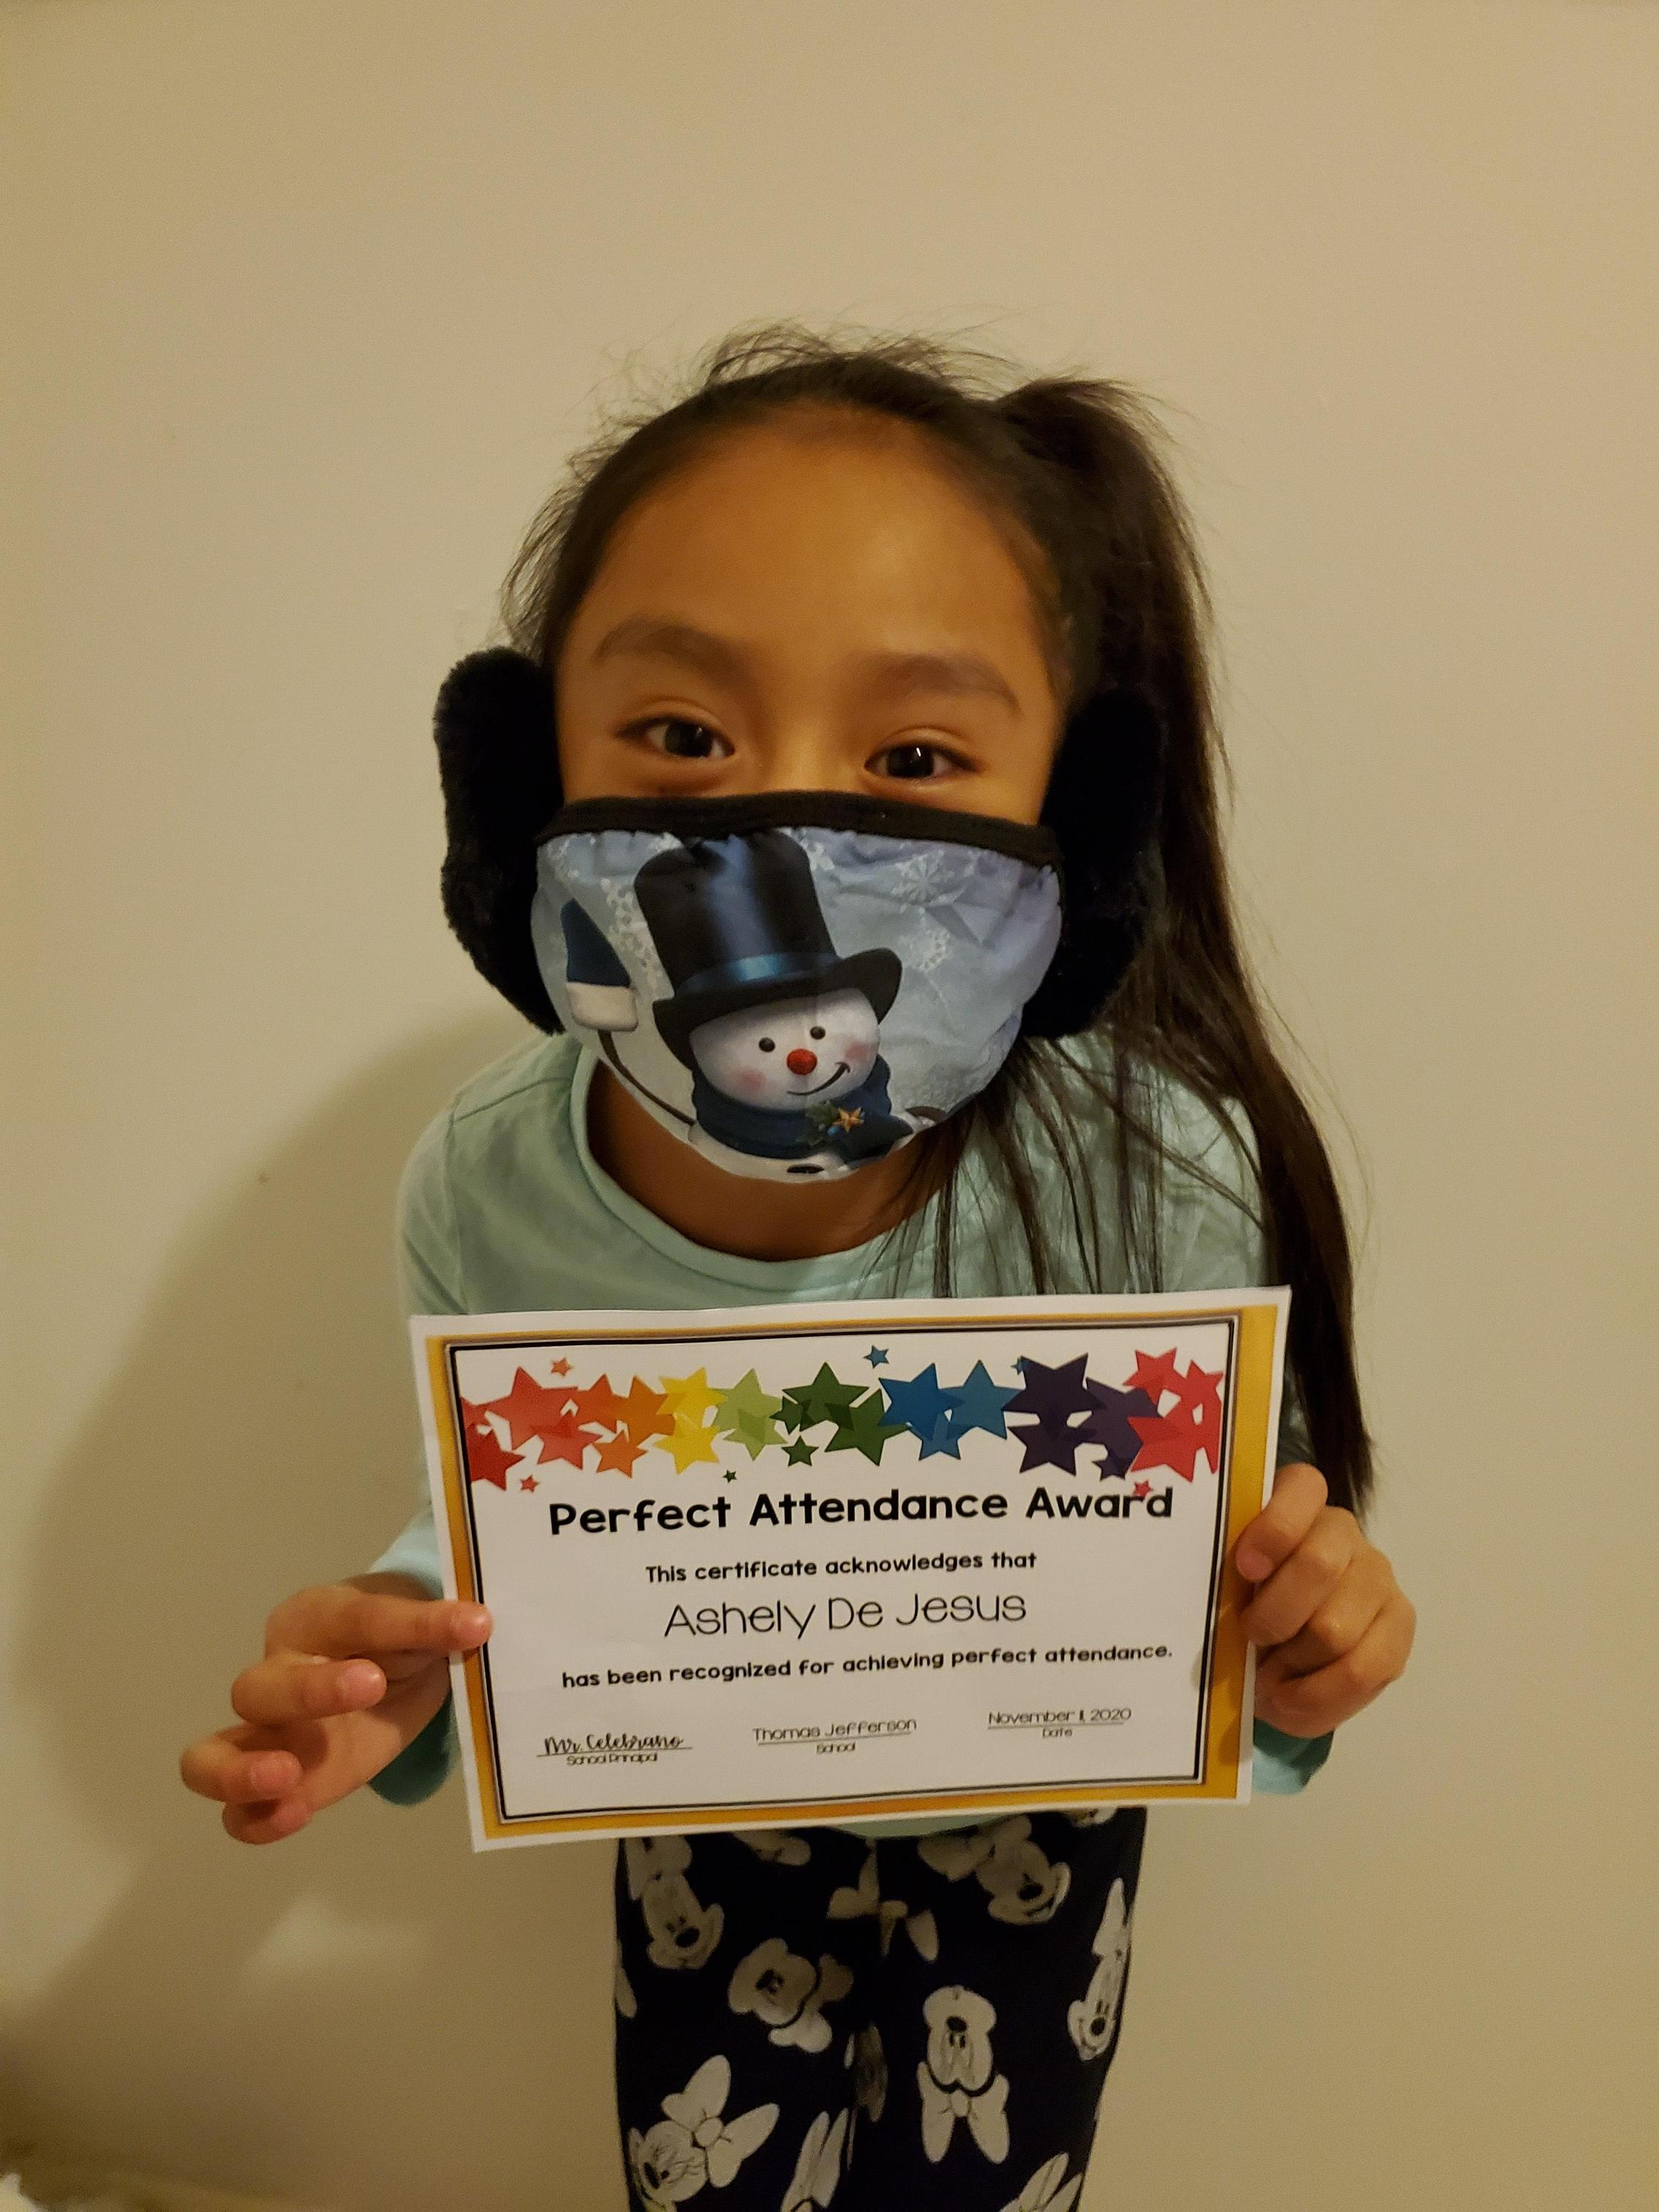 Ashely De Jesus holding perfect attendance certificate